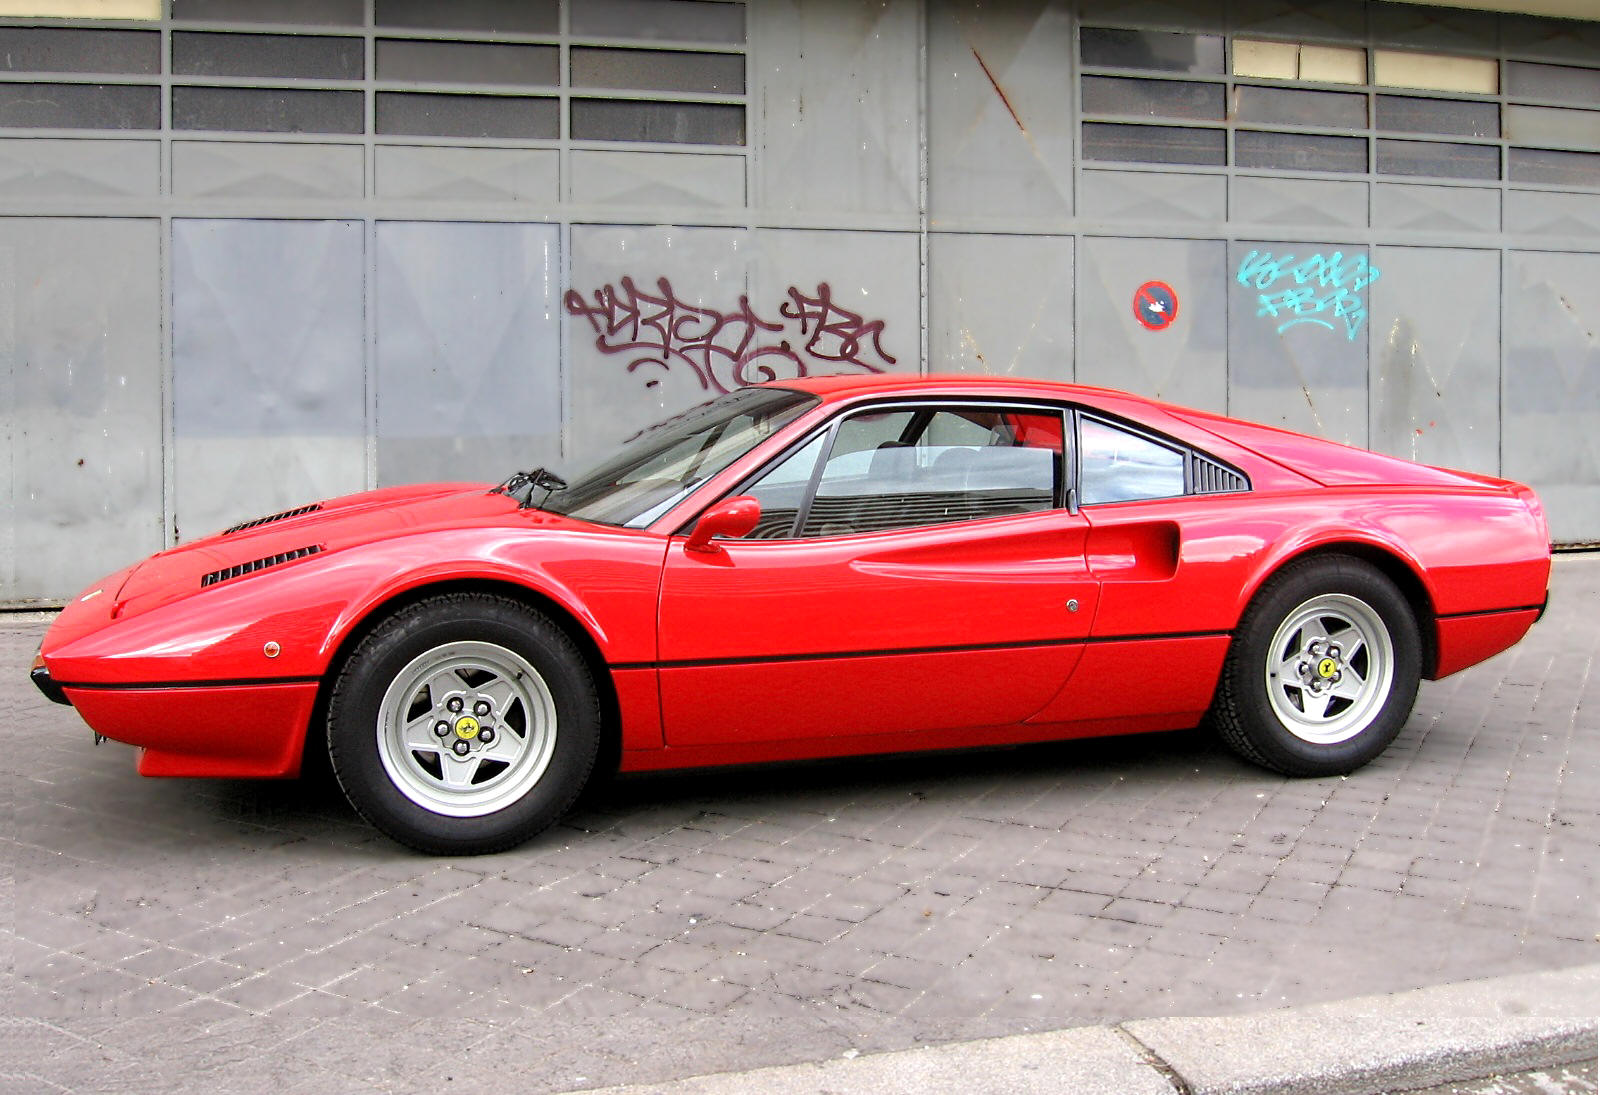 Ferrari_308GTB_vetroresina_red-black_side